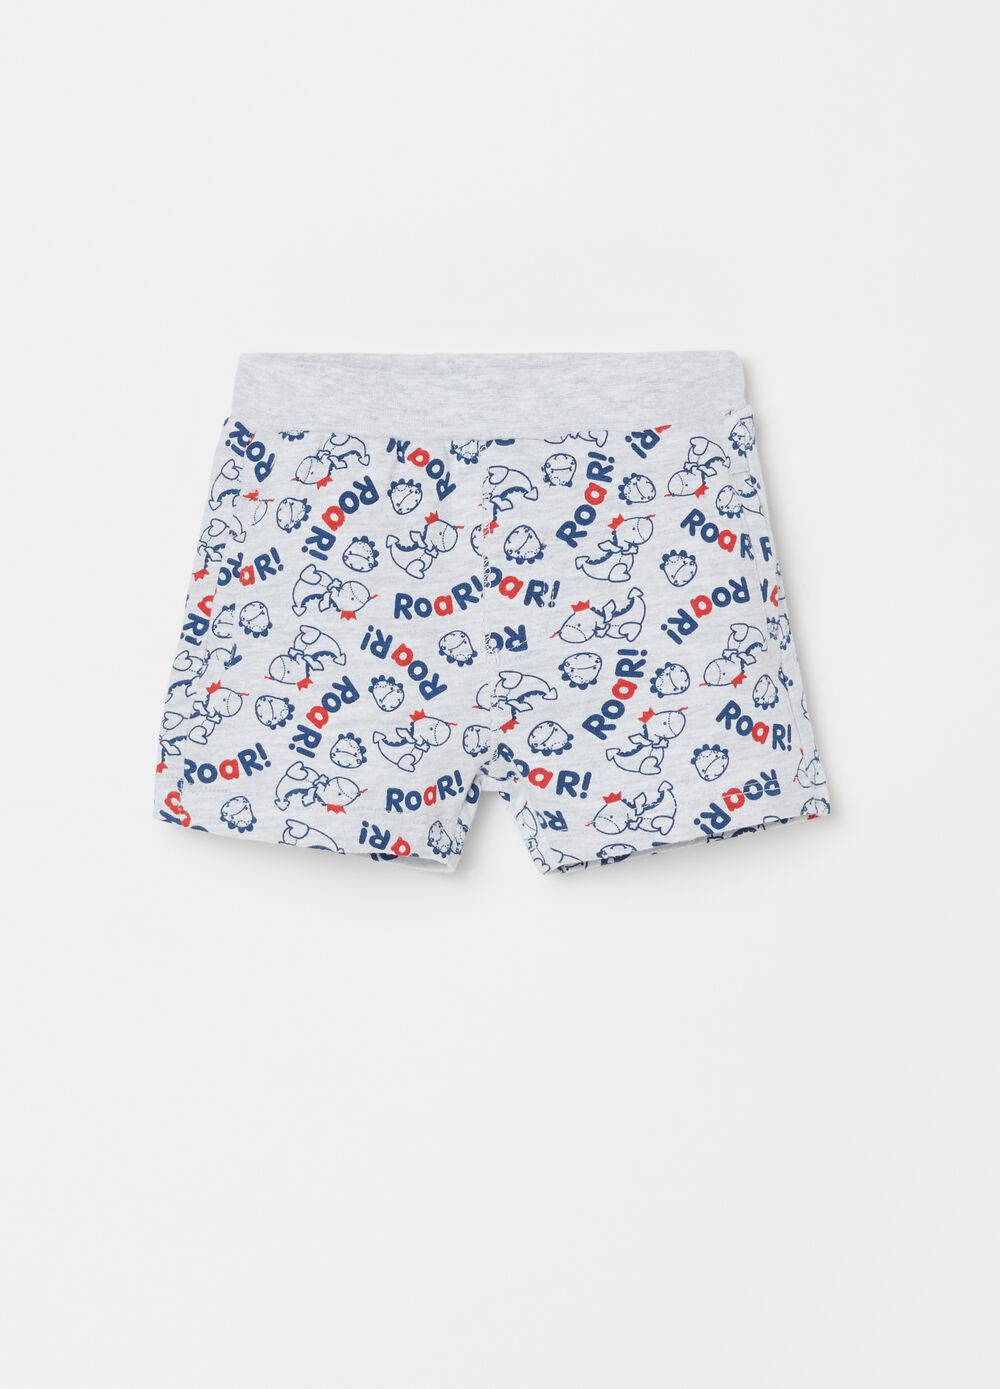 Shorts with pocket and dinosaur pattern